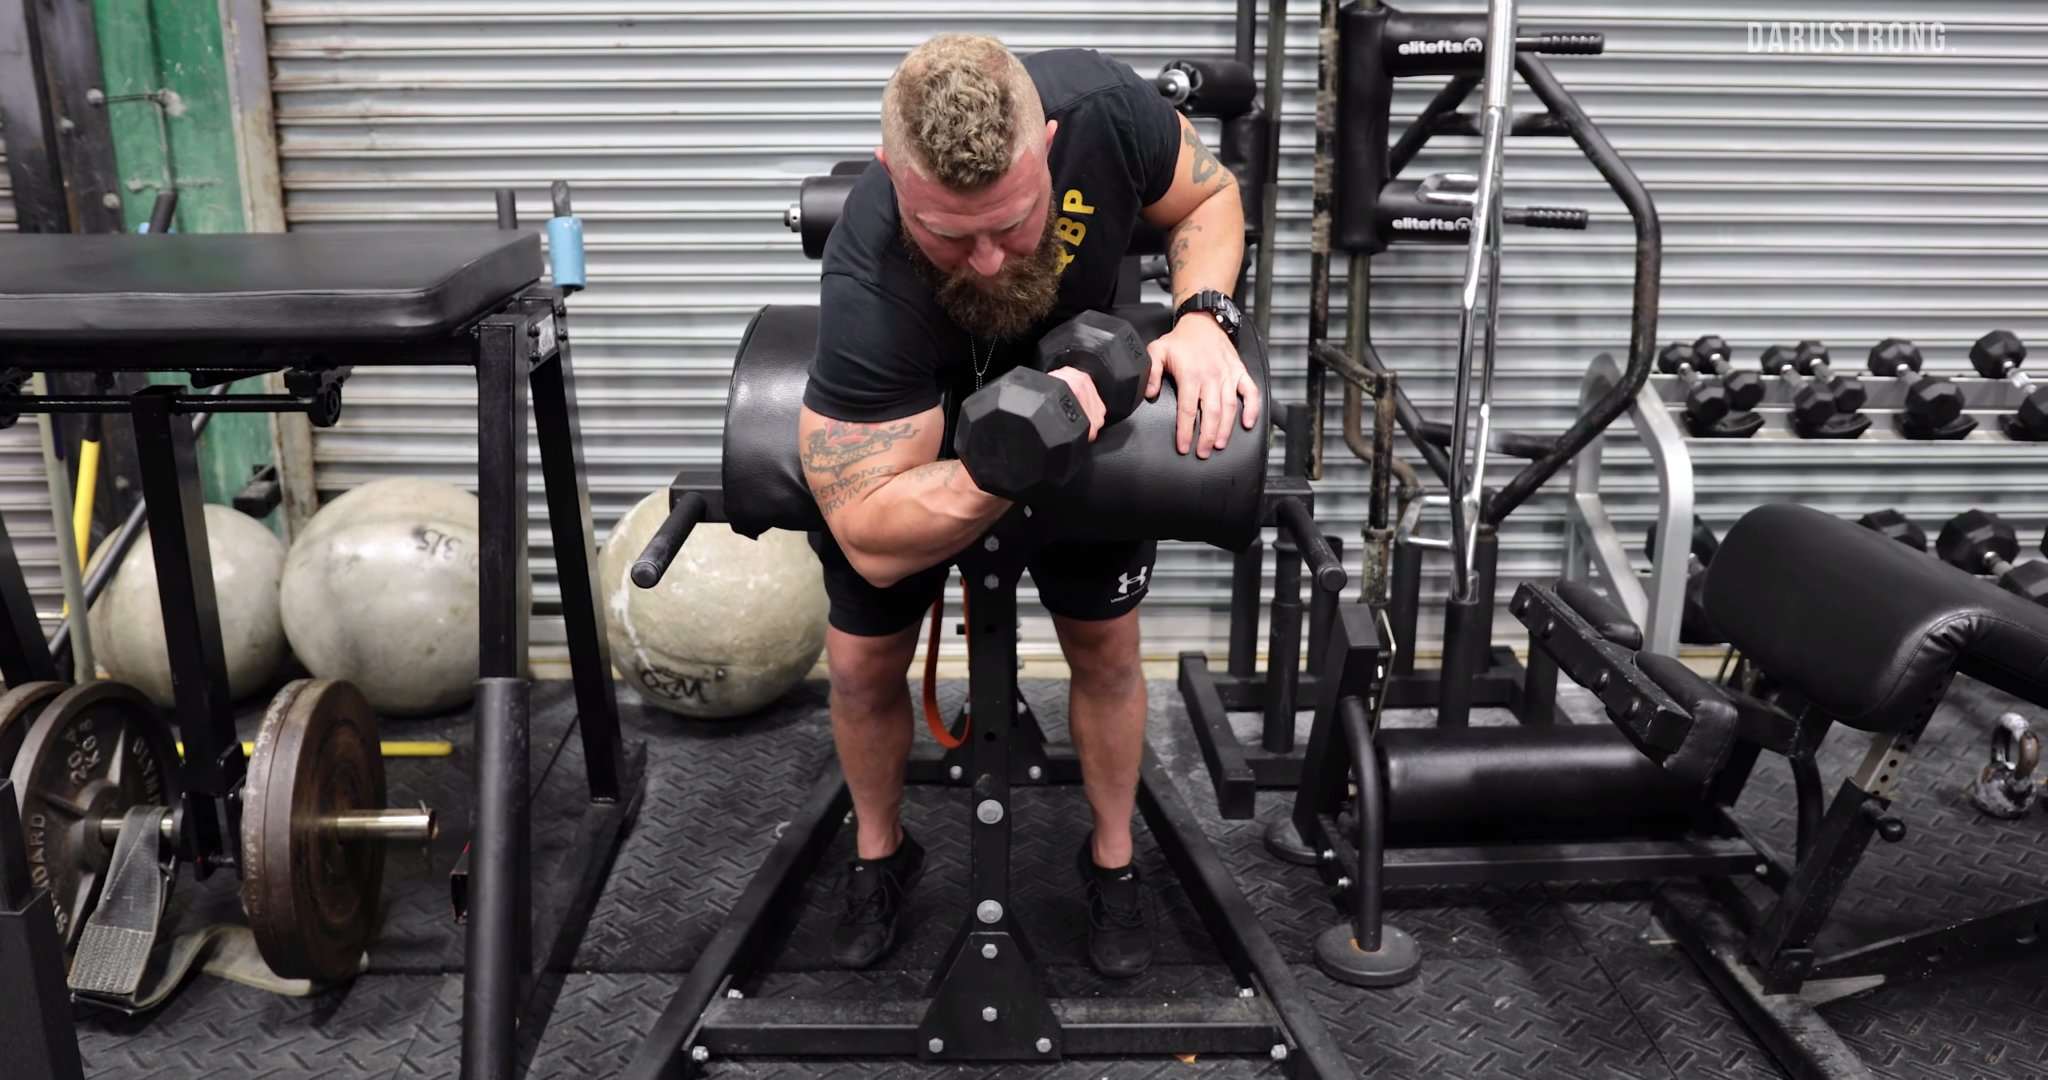 4 Arm Exercises to Increase Punching Power 3